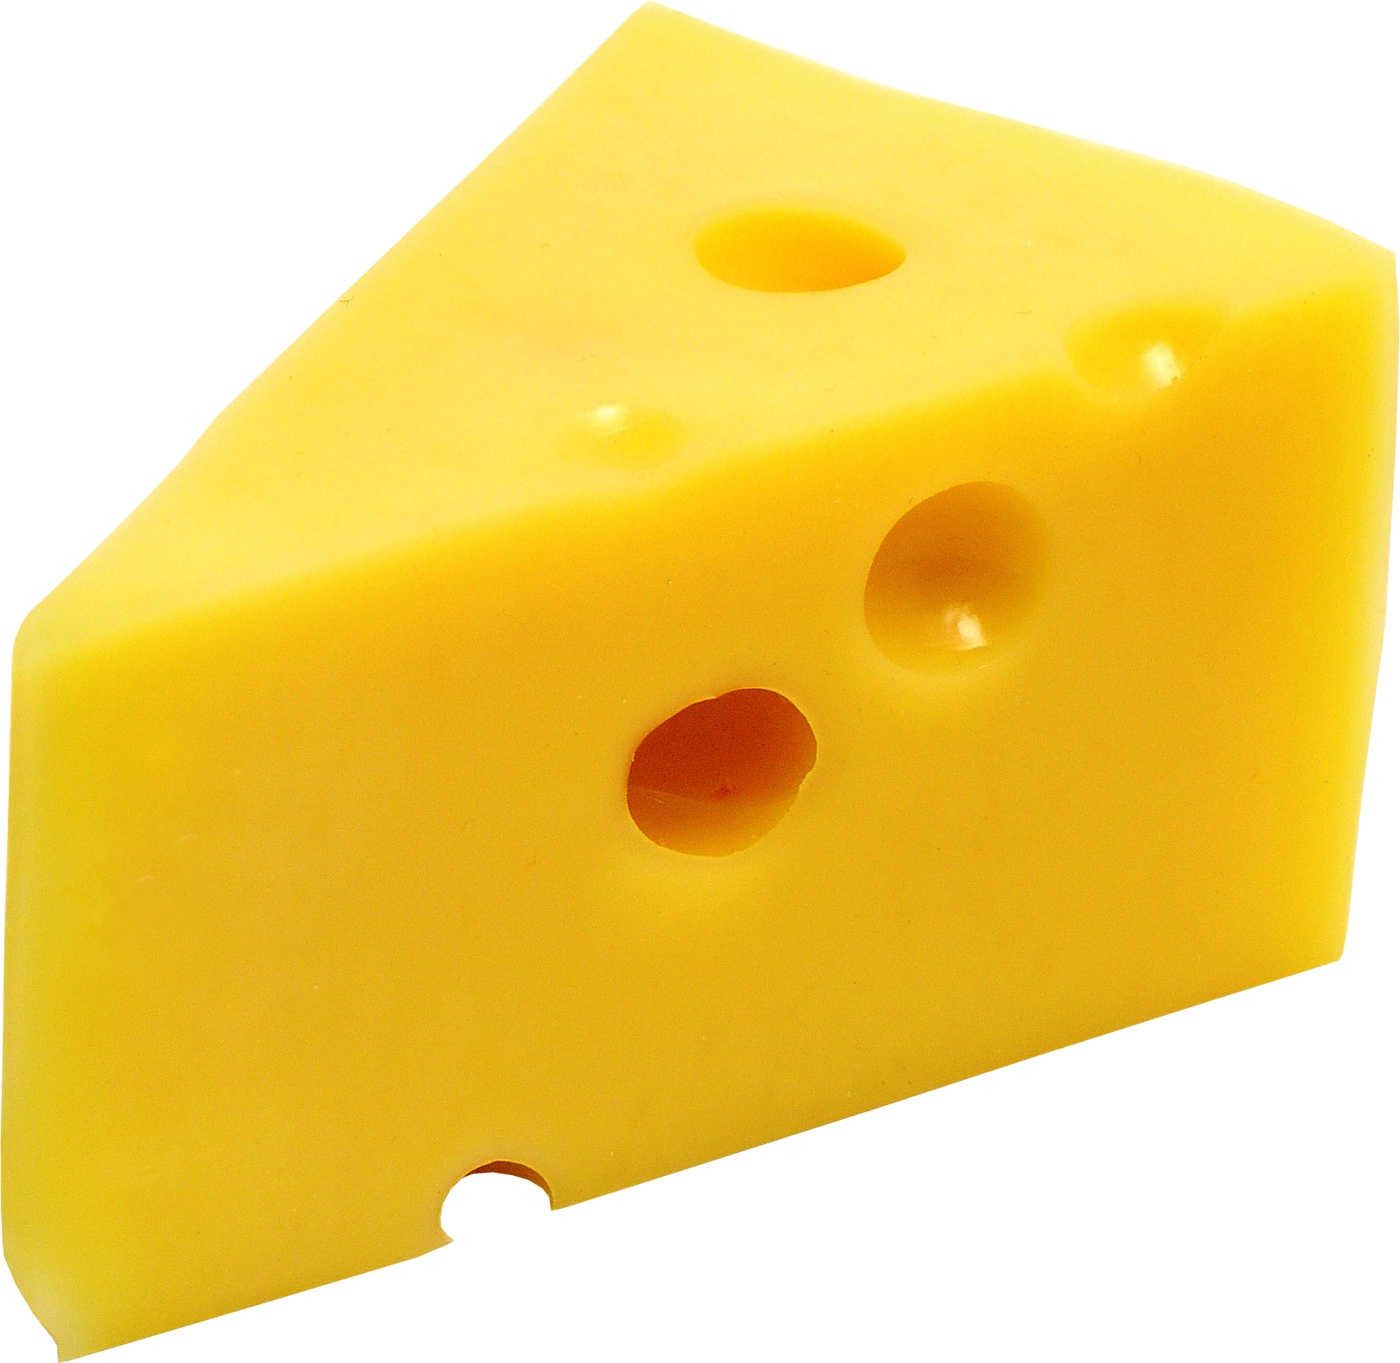 Cheese clipart freeuse Cheese clipart the cliparts - Cliparting.com freeuse